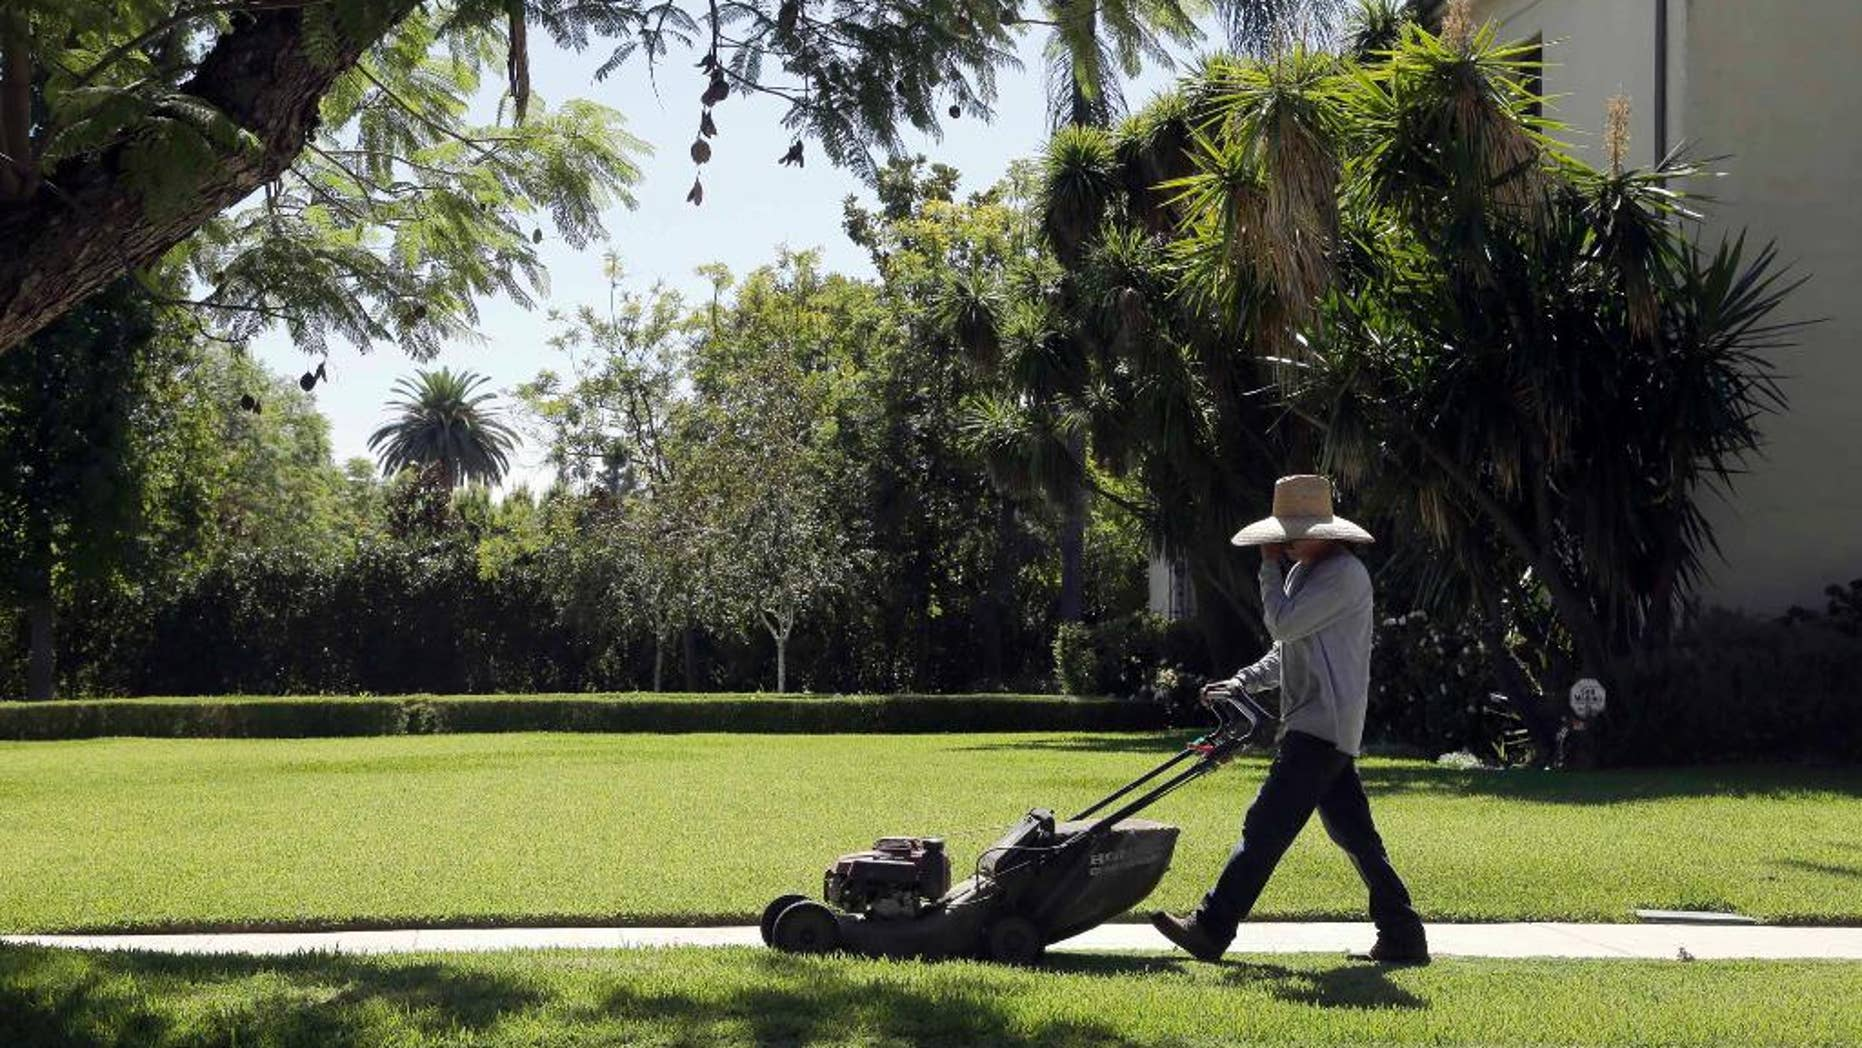 File - In this Oct. 1, 2015 file photo, a gardener mows a lawn in Pasadena, Calif. State officials say residents of drought-weary California in November missed their 25 percent water conservation mandate for a second month running. The chair of the State Water Resources Control Board, says California remains on course to beat its long-term goal through February. (AP Photo/Nick Ut, File)